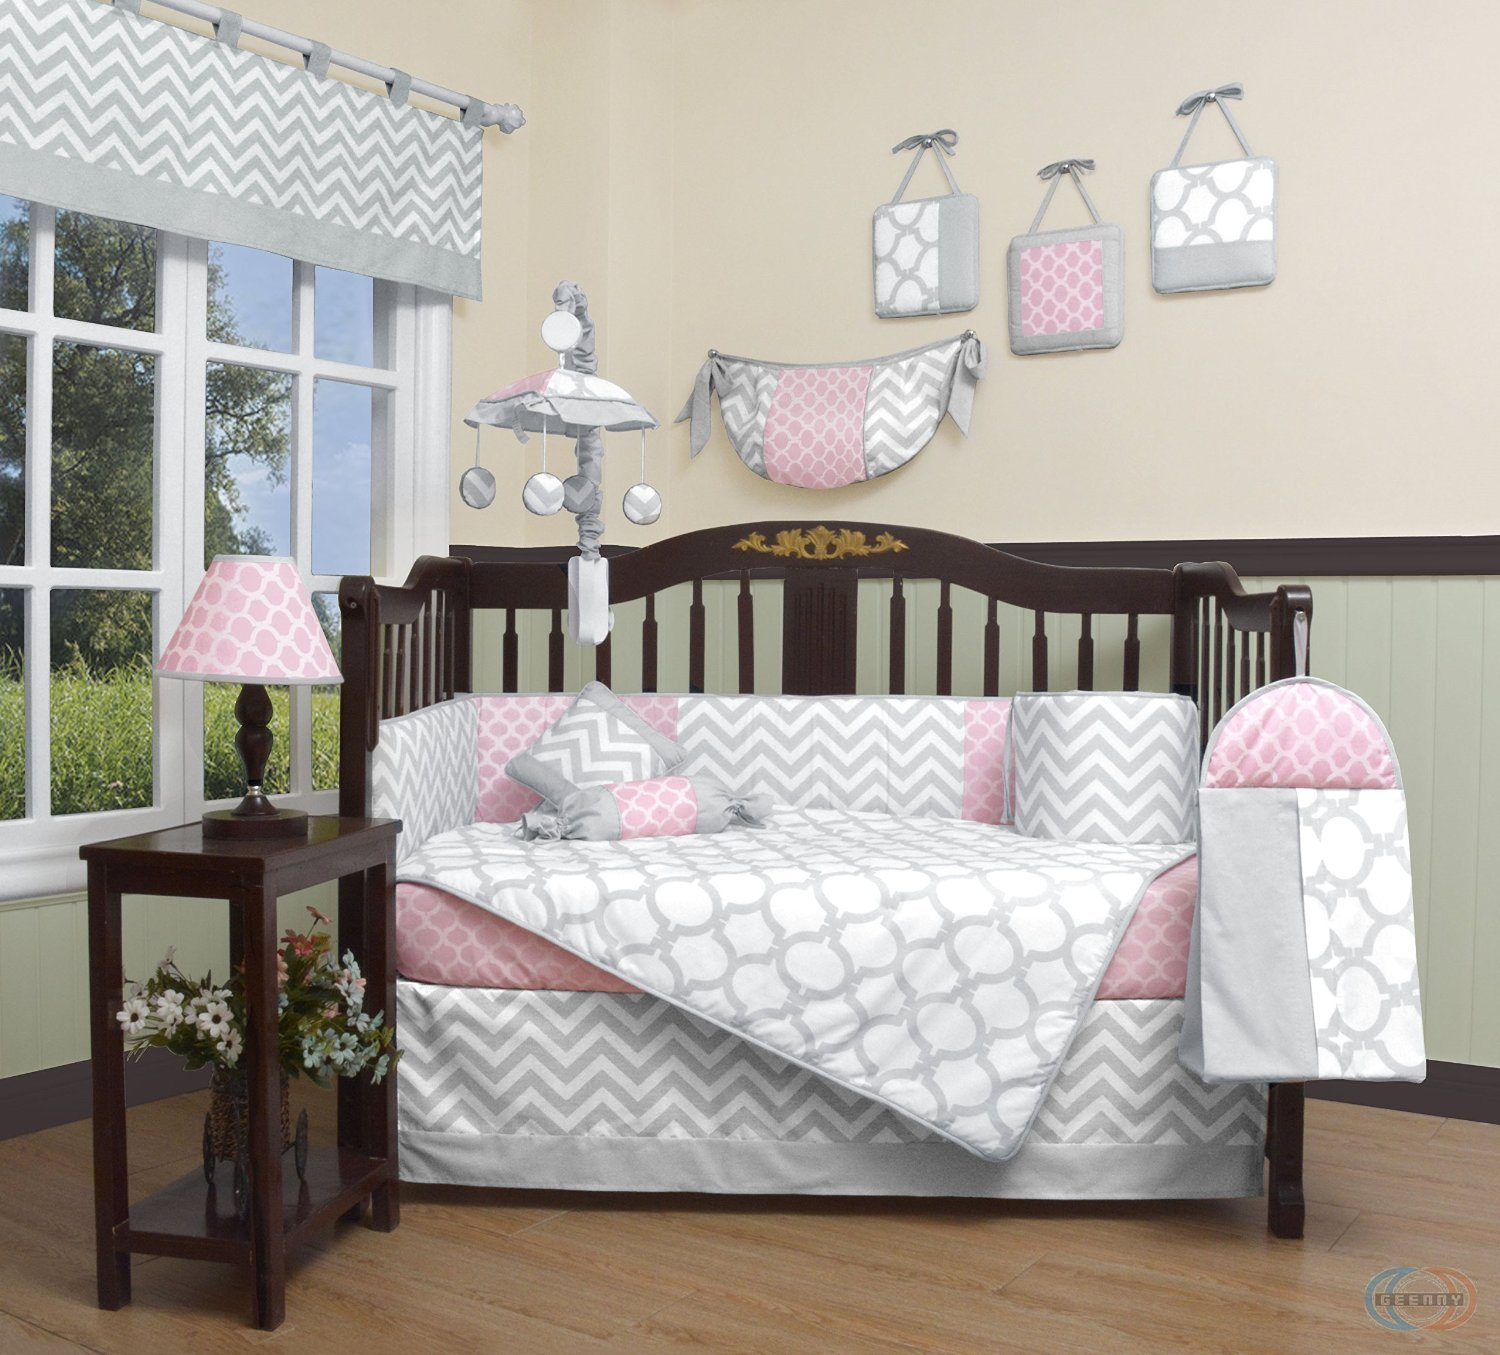 Amazon.com : GEENNY Boutique Baby 13 Piece Crib Bedding Set, Salmon  Pink/Gray Chevron : Baby